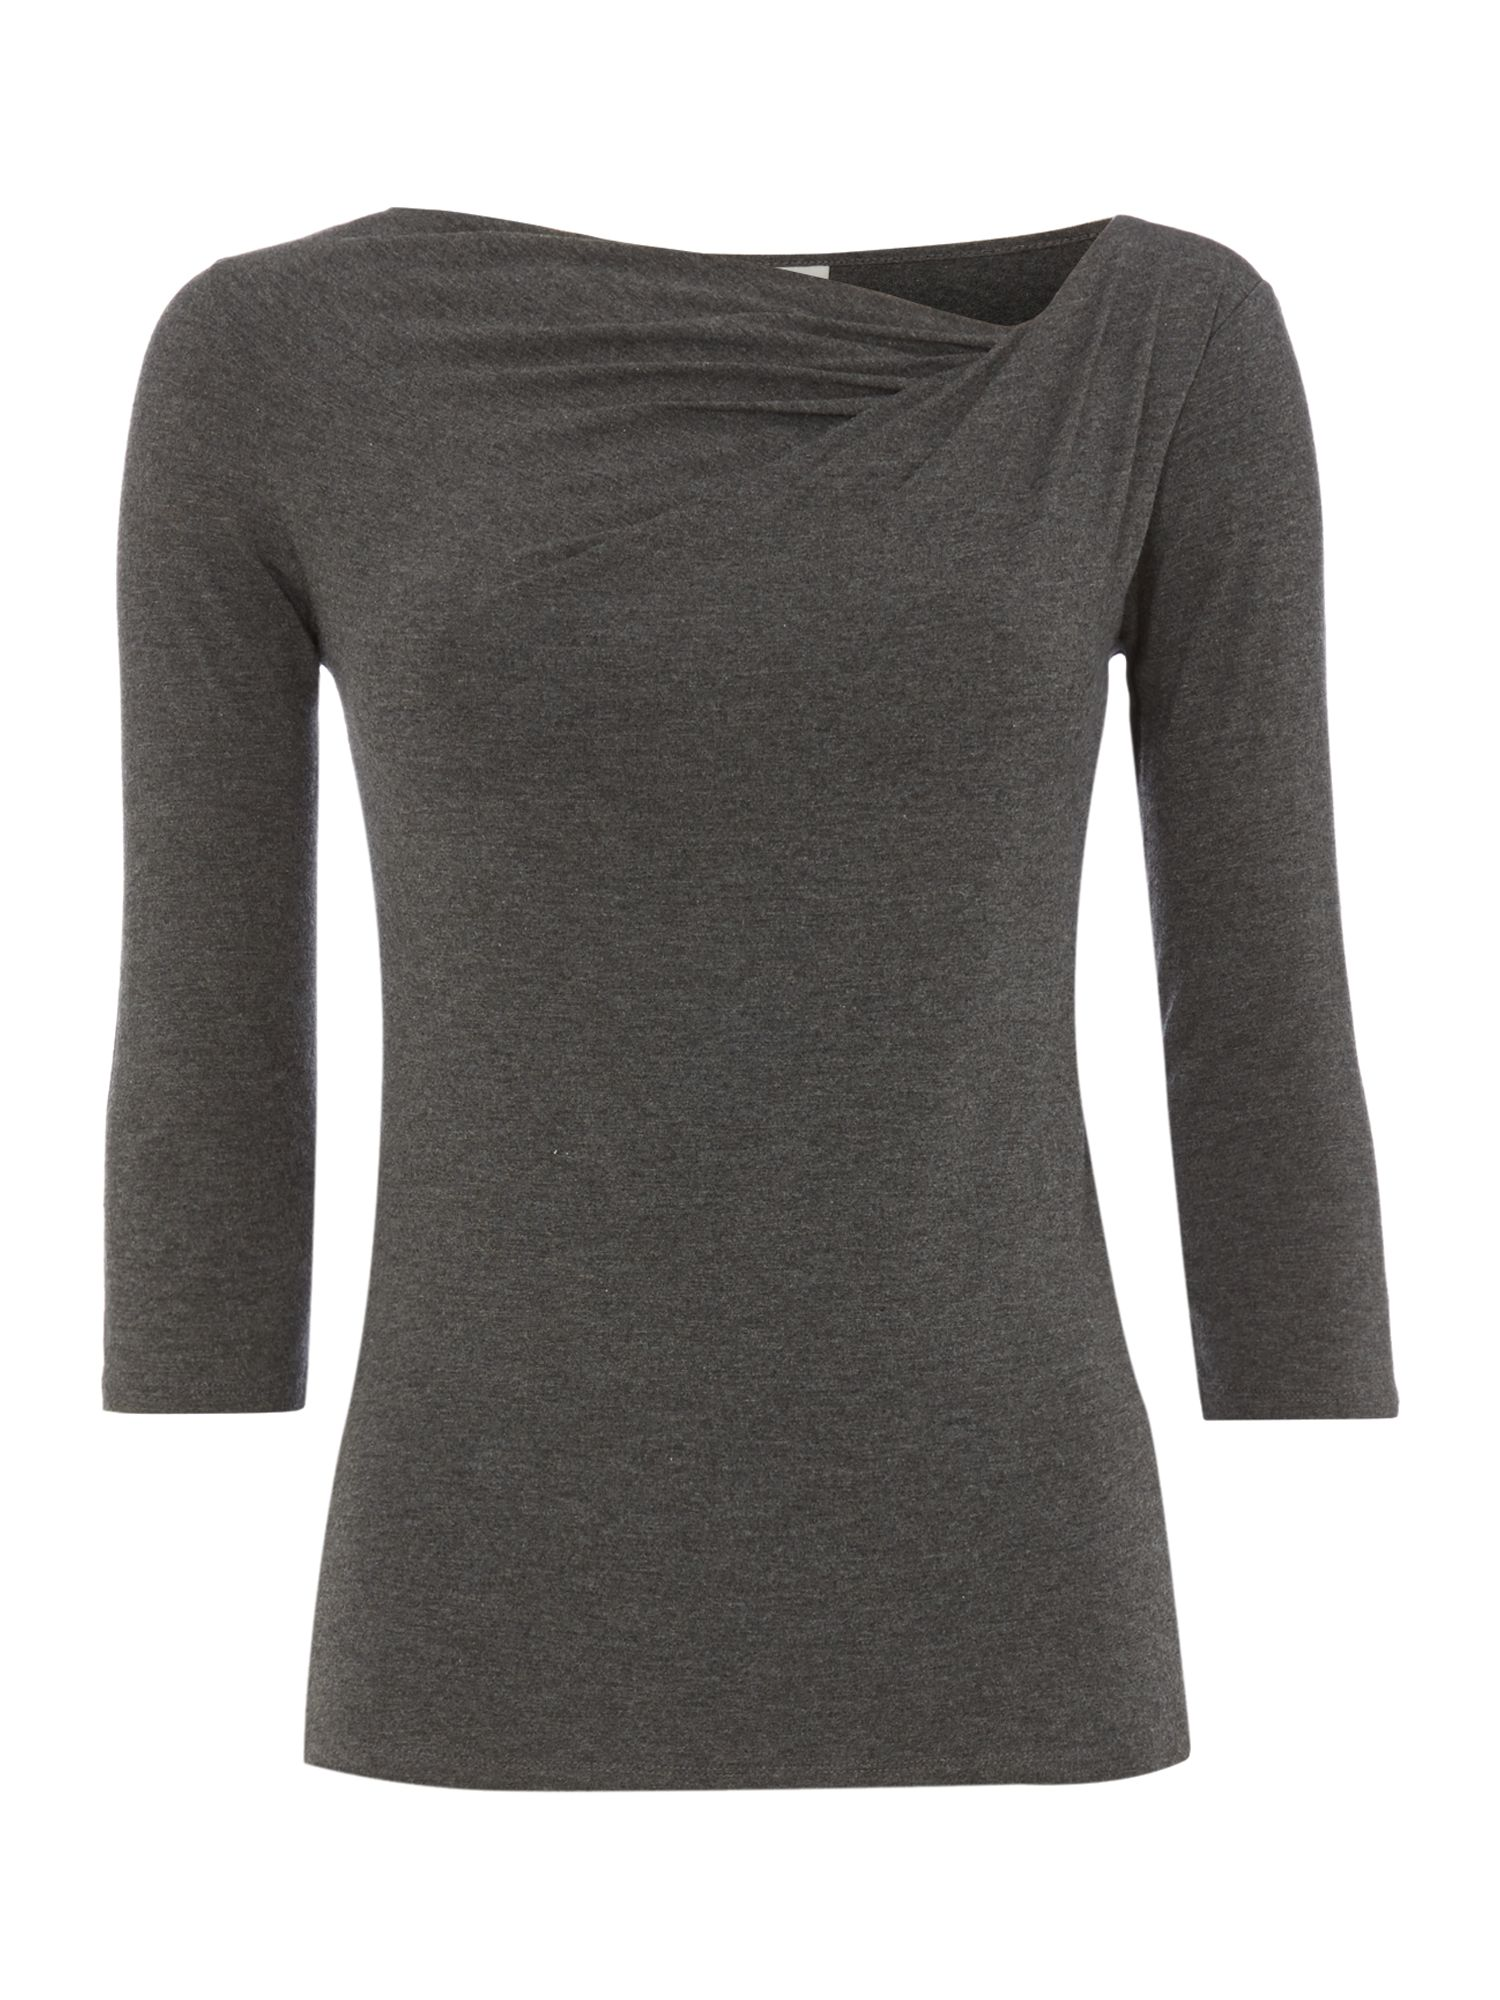 3/4 Sleeve twist cowl jersey top